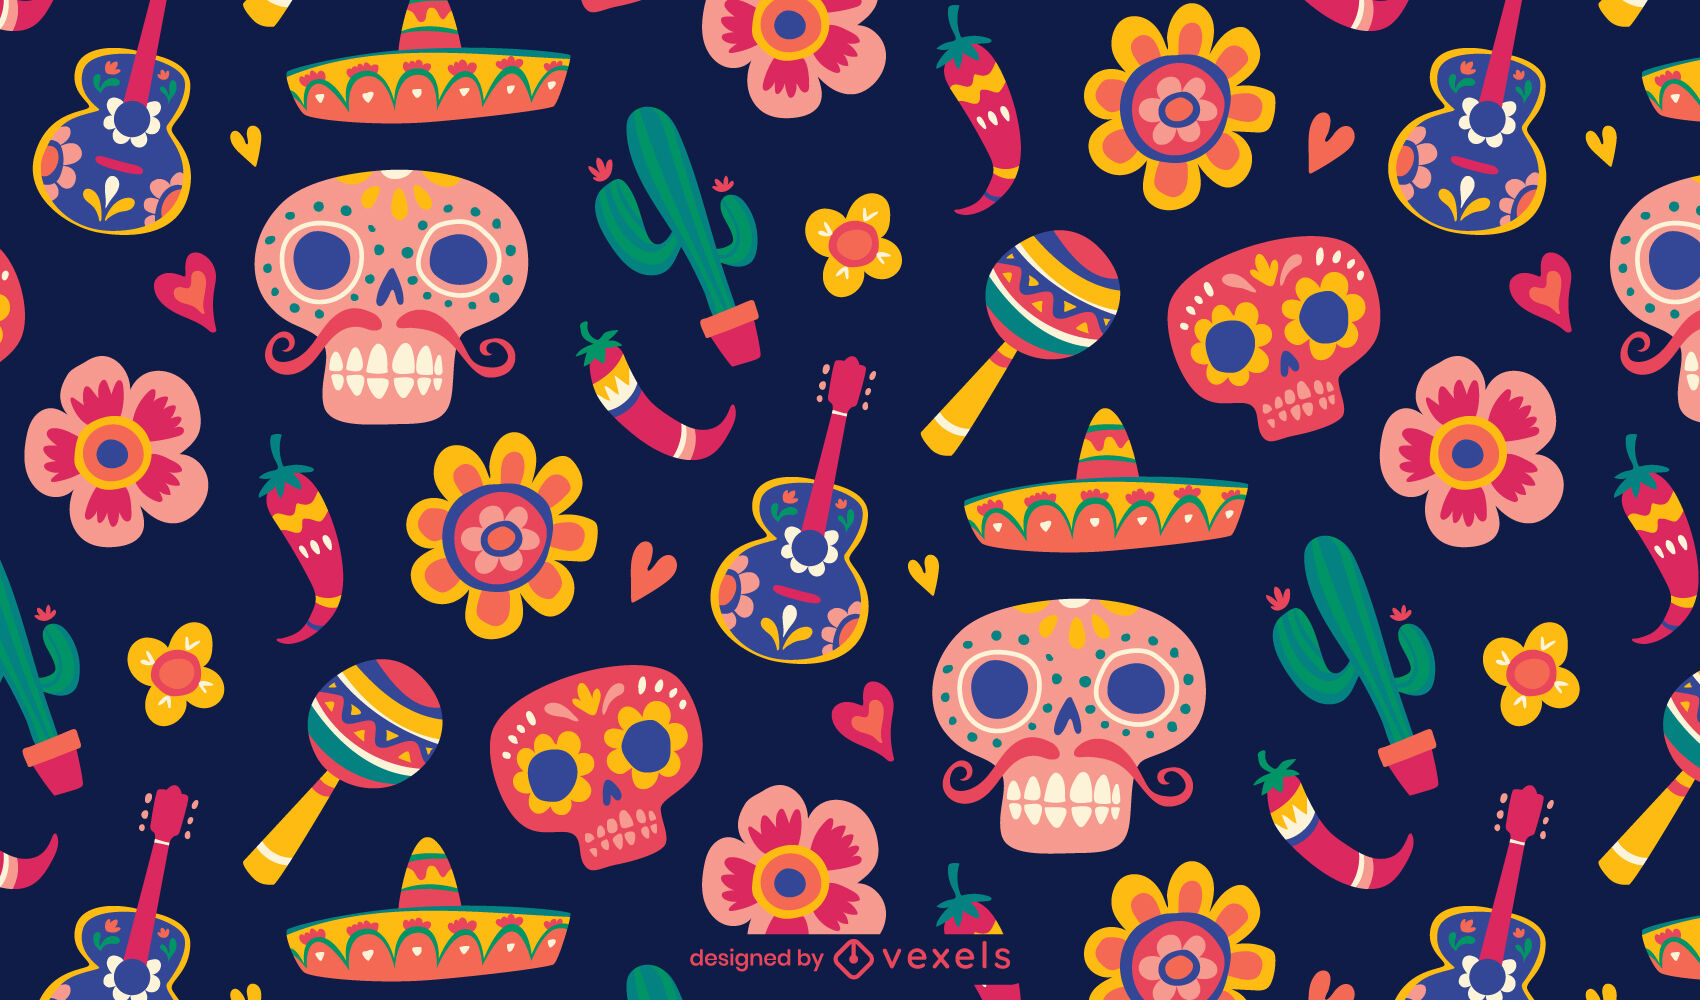 Day of the dead tileable pattern design